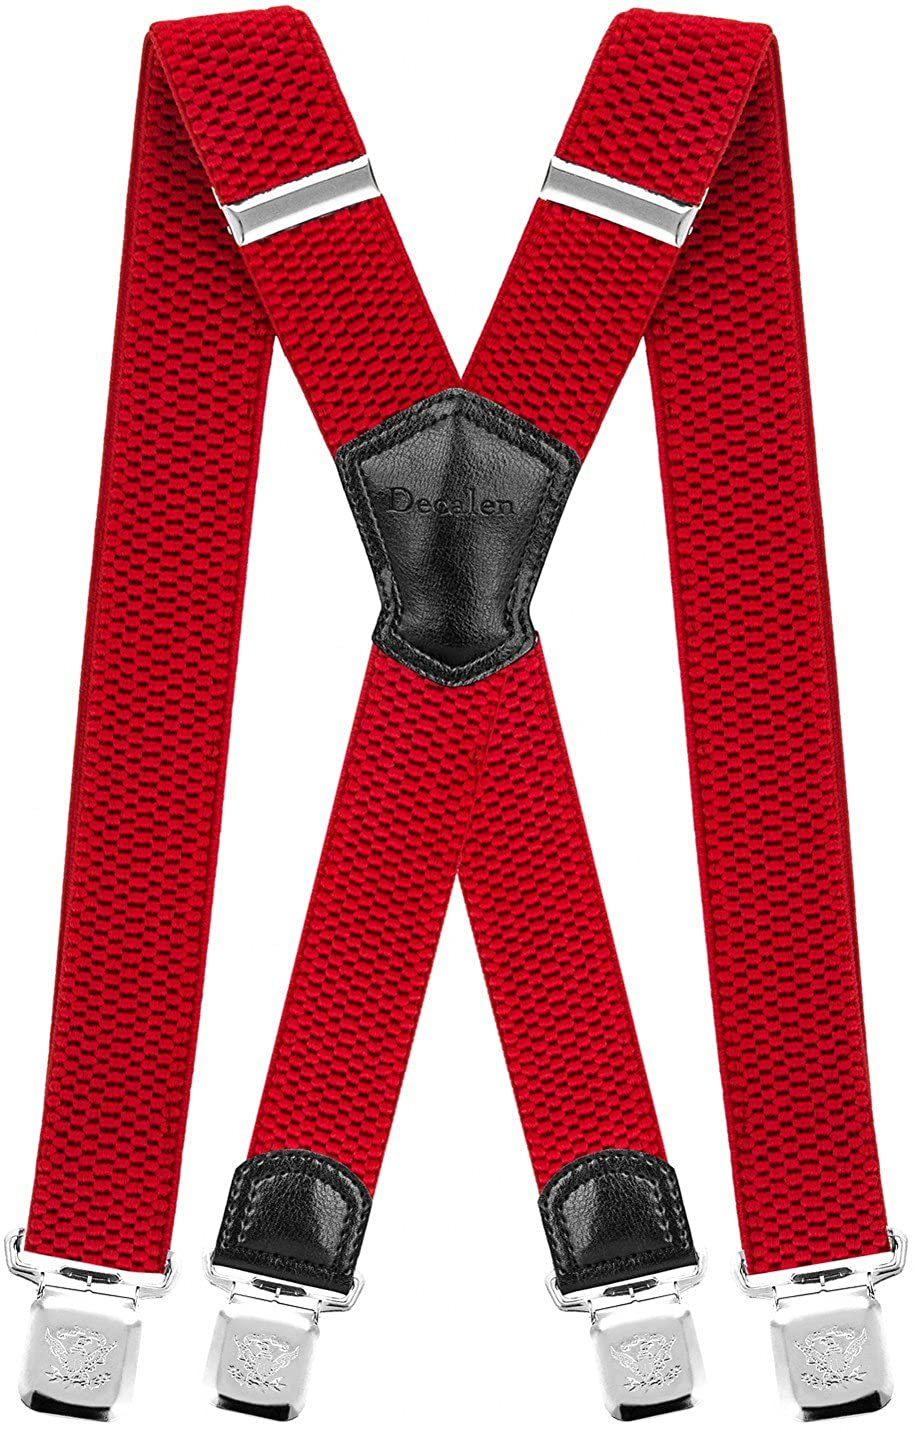 Decalen Mens Braces with Very Strong Metal Clips Wide 4 cm 1.5 inch Heavy Duty Suspenders One Size Fits All Men and Women Adjustable and Elastic X Form